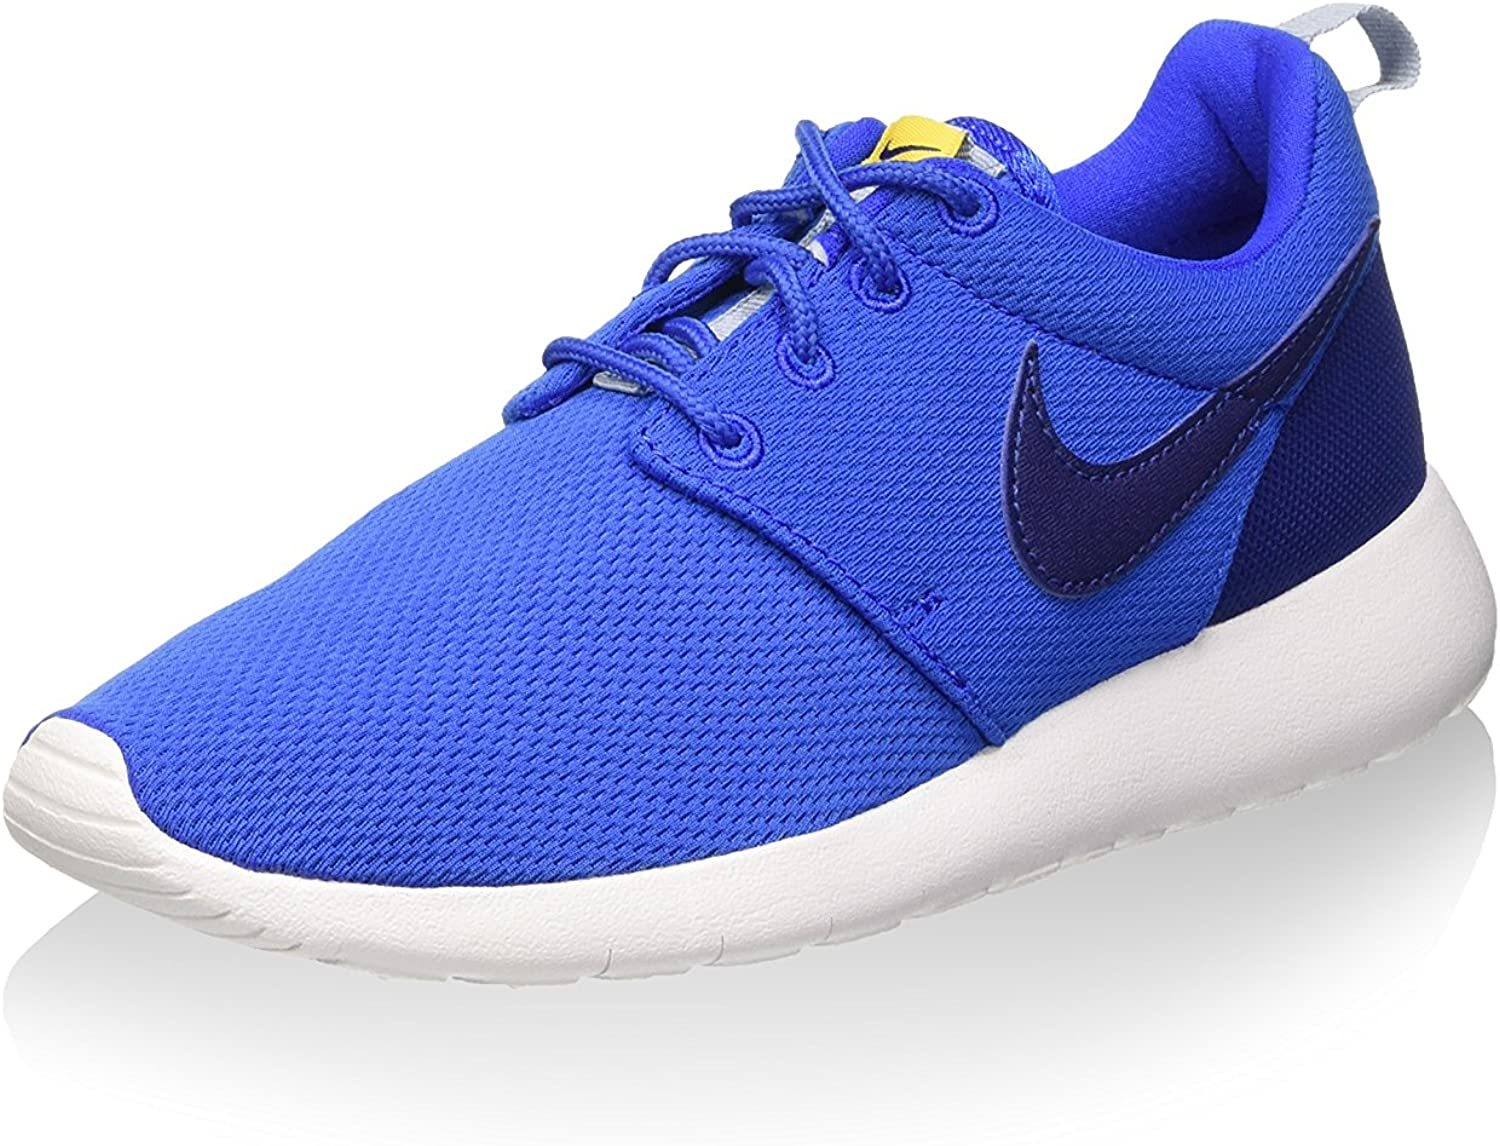 Nike Roshe One (GS) Zapatillas de running, Niños: MainApps: Amazon.es: Zapatos y complementos